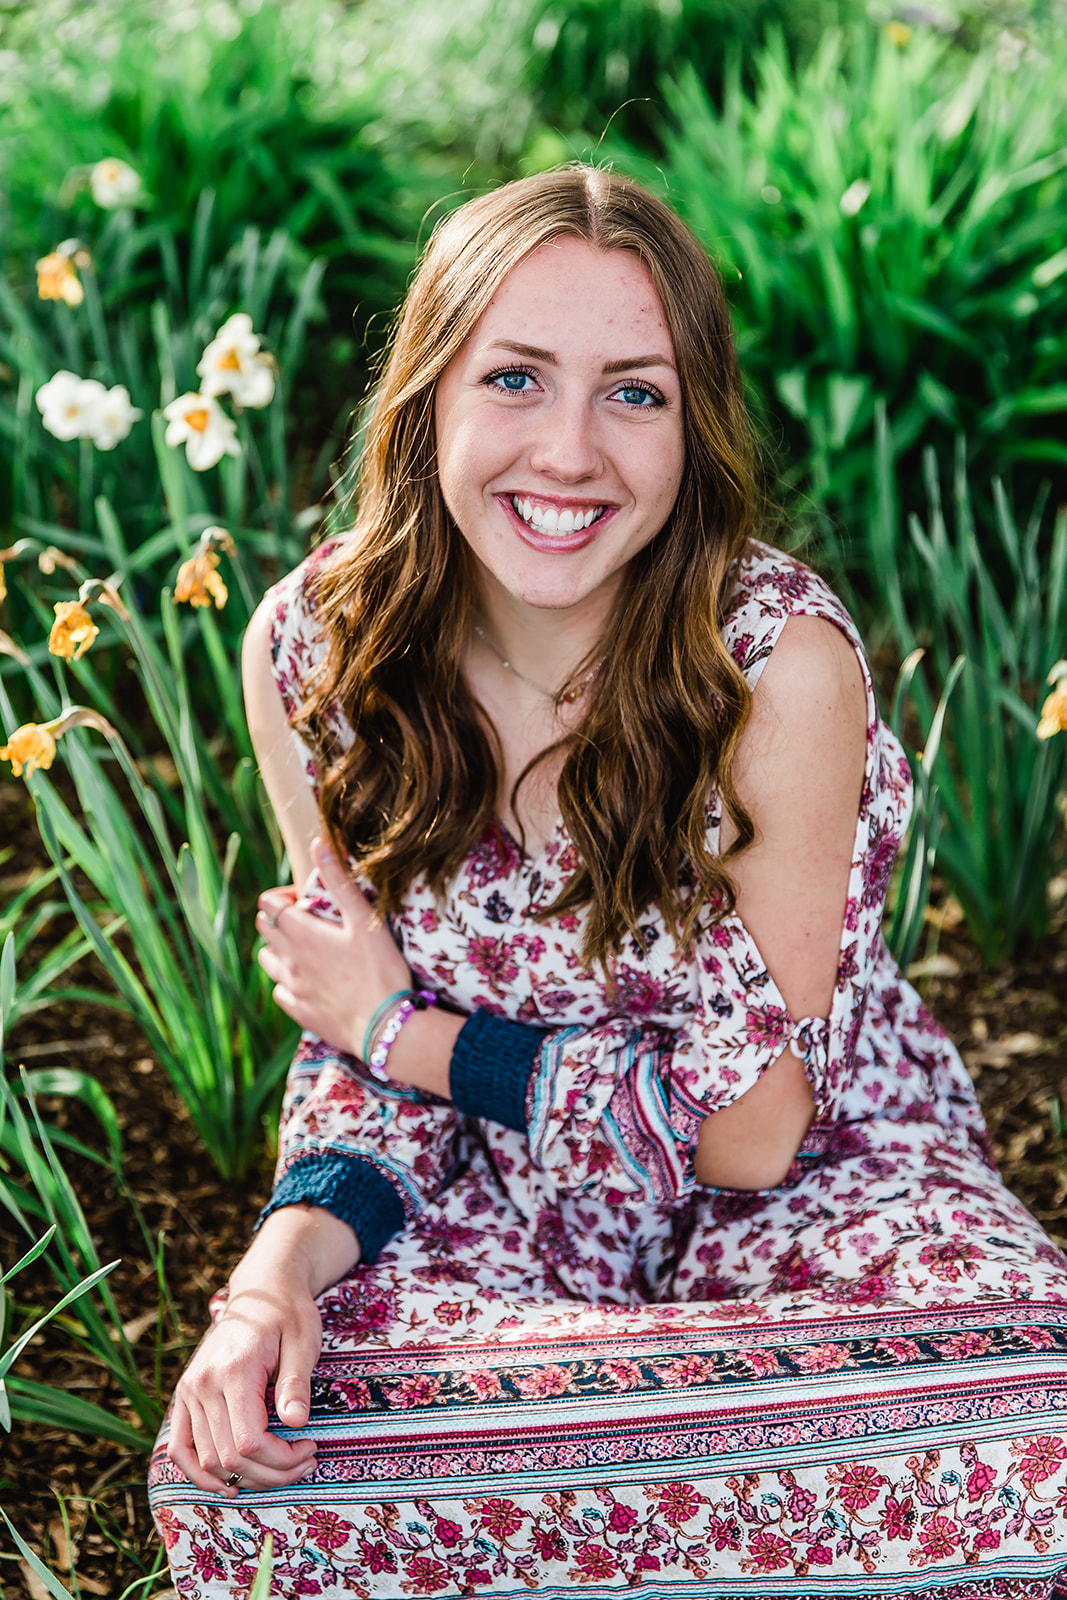 Senior pictures. Class of 2019. Utah State University graduation. Logan Utah senior class pictures. Professional photography. Happy to be done with college. Spring time photos in Logan Utah. Excited for the next phase of life. Professional senior pictures. #professionalseniorpictures #senioryear #seniorphotos #congratulations #classof2019 #graduation #college #collegephotography #springtimephotos #excitedtobedone